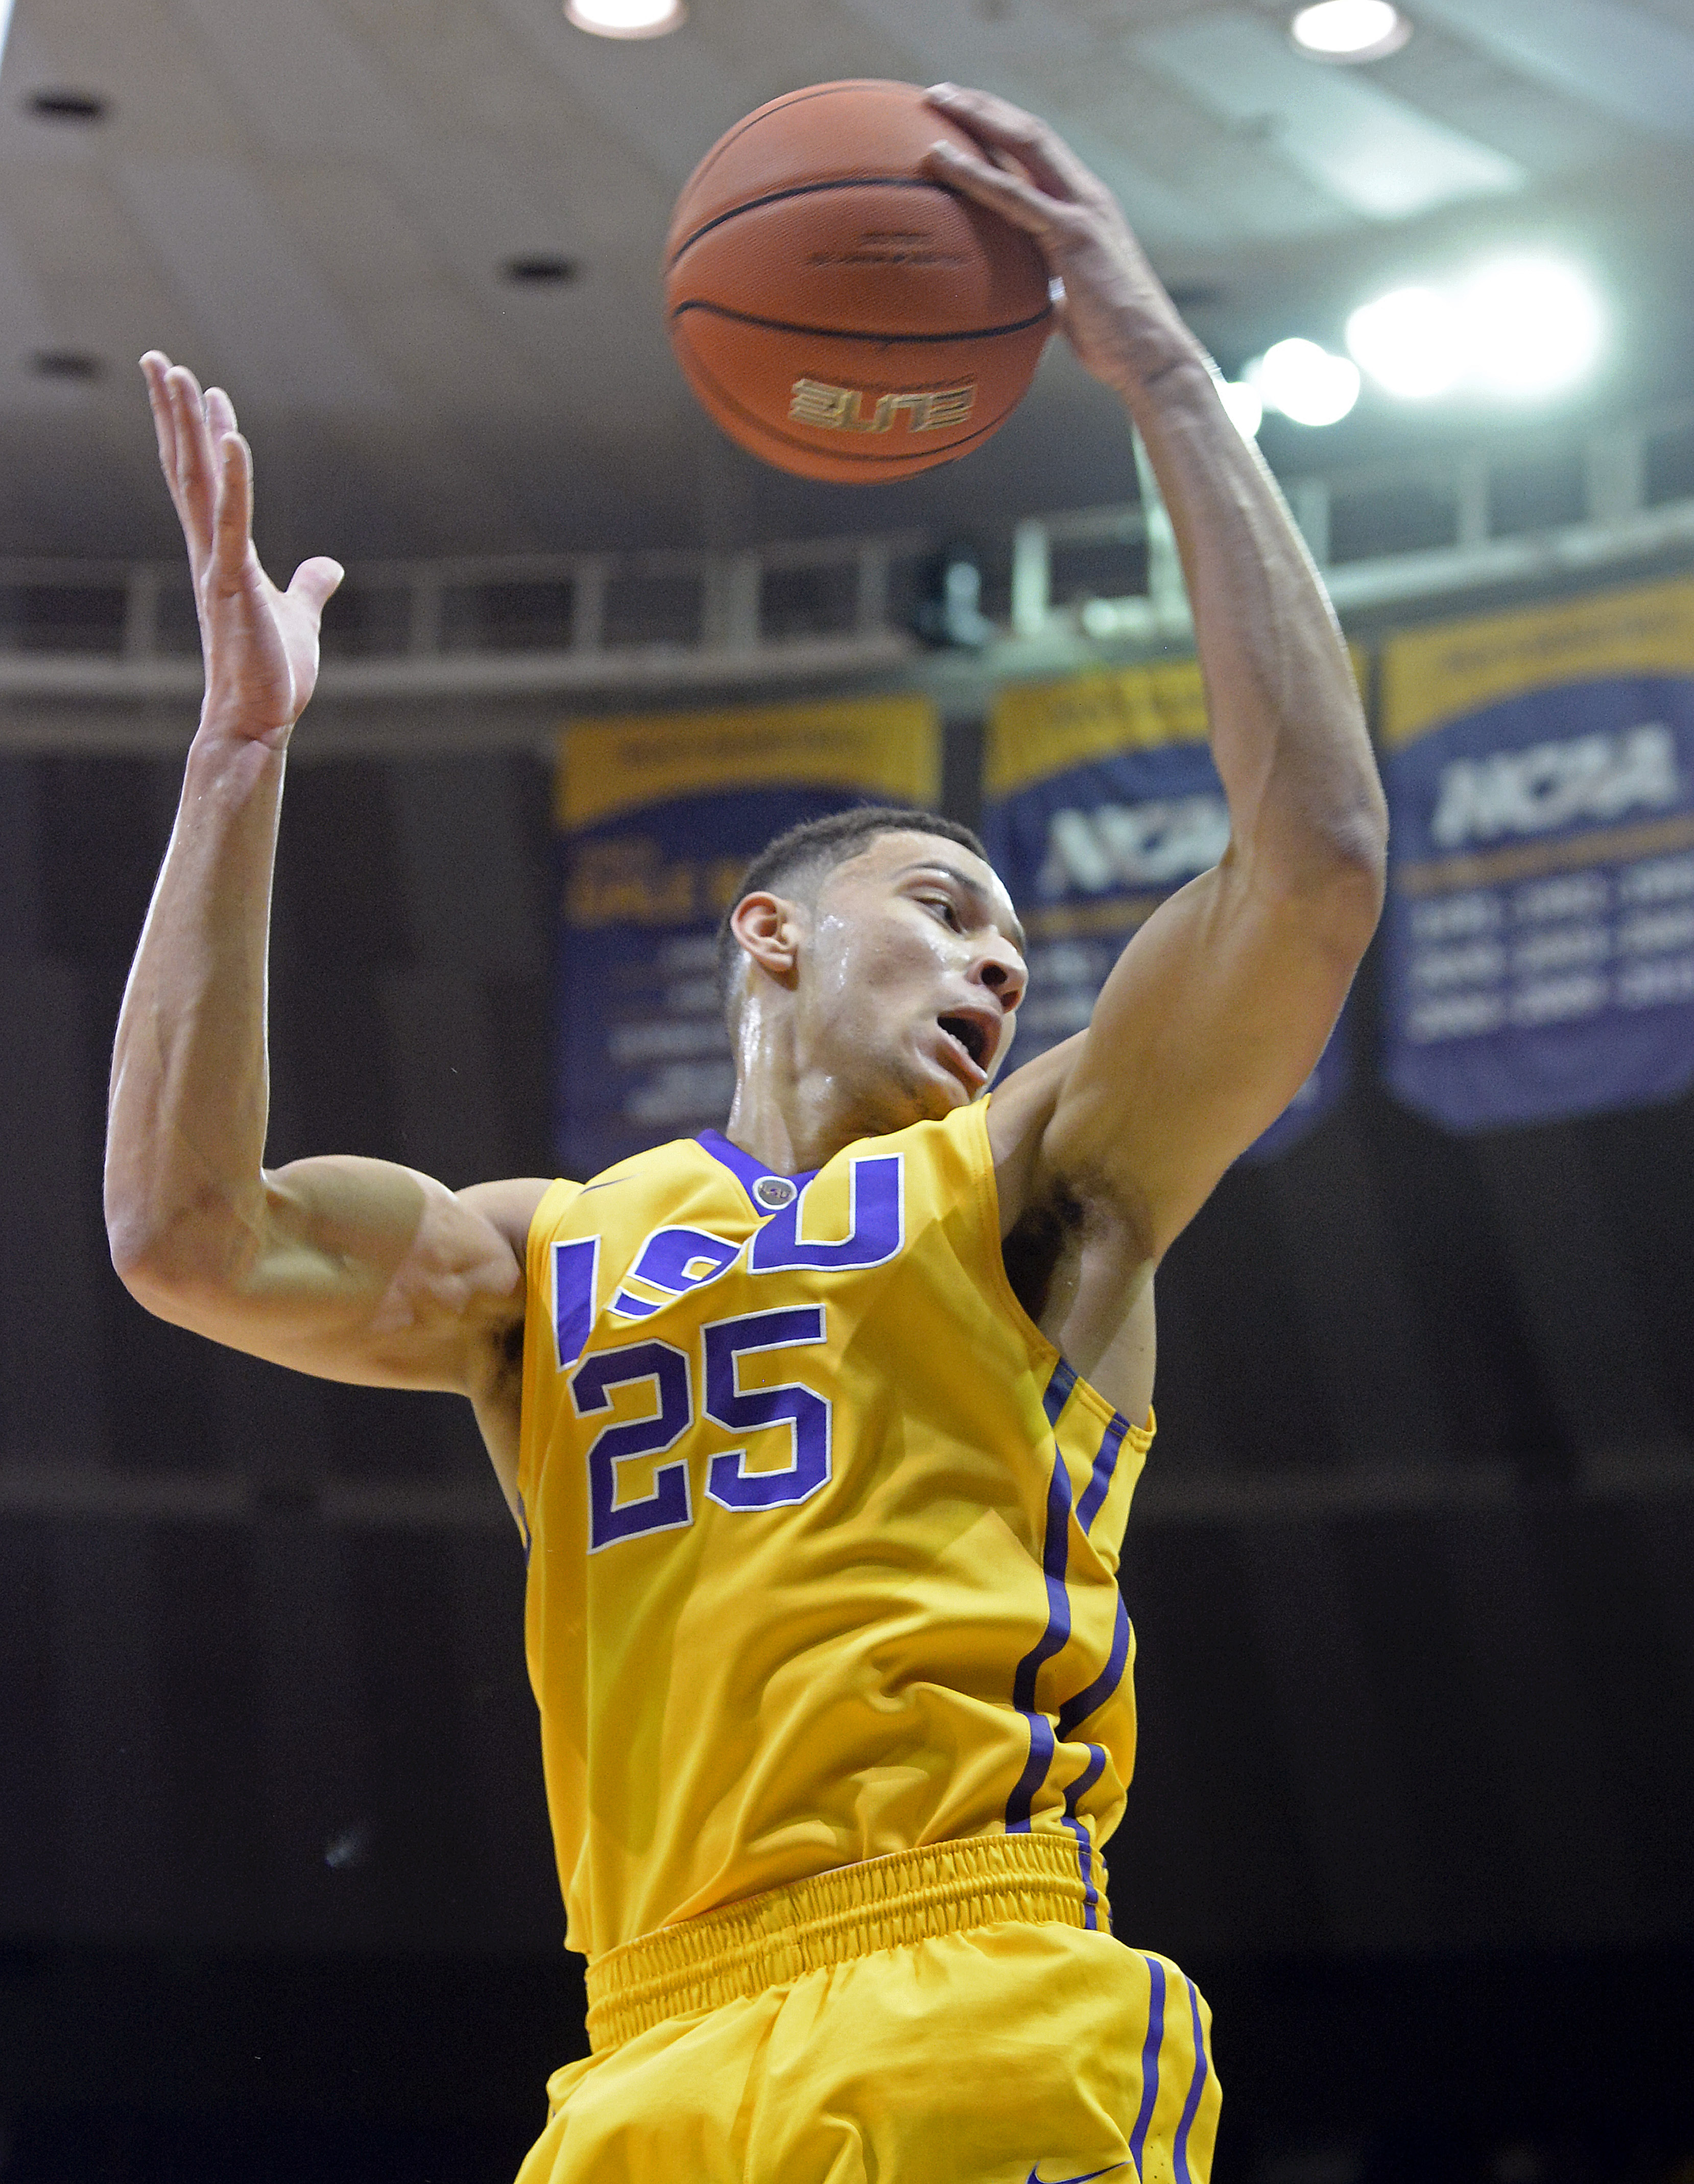 FILE - In this Feb. 13, 2016, file photo, LSU forward Ben Simmons (25) pulls in a rebound in the first half of an NCAA college basketball game against Texas A&M,  in Baton Rouge, La. LSU freshman forward Ben Simmons, who led the Tigers in scoring, rebound